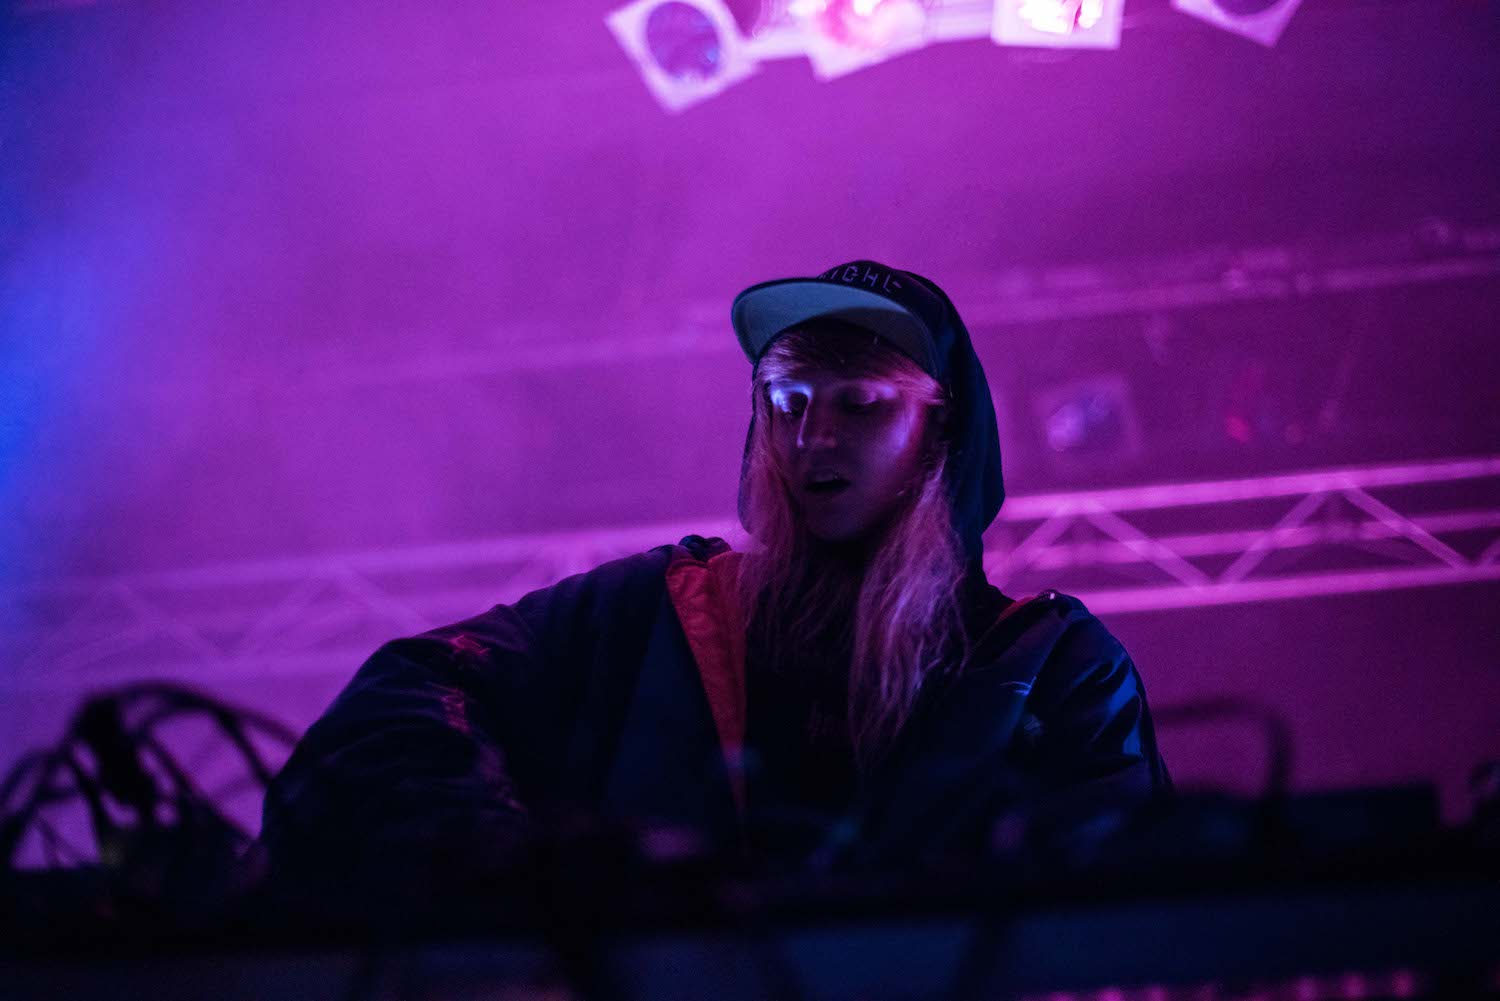 cashmere cat music live review sydney photo credit dominique burns blackwell savage thrills savagethrills 6